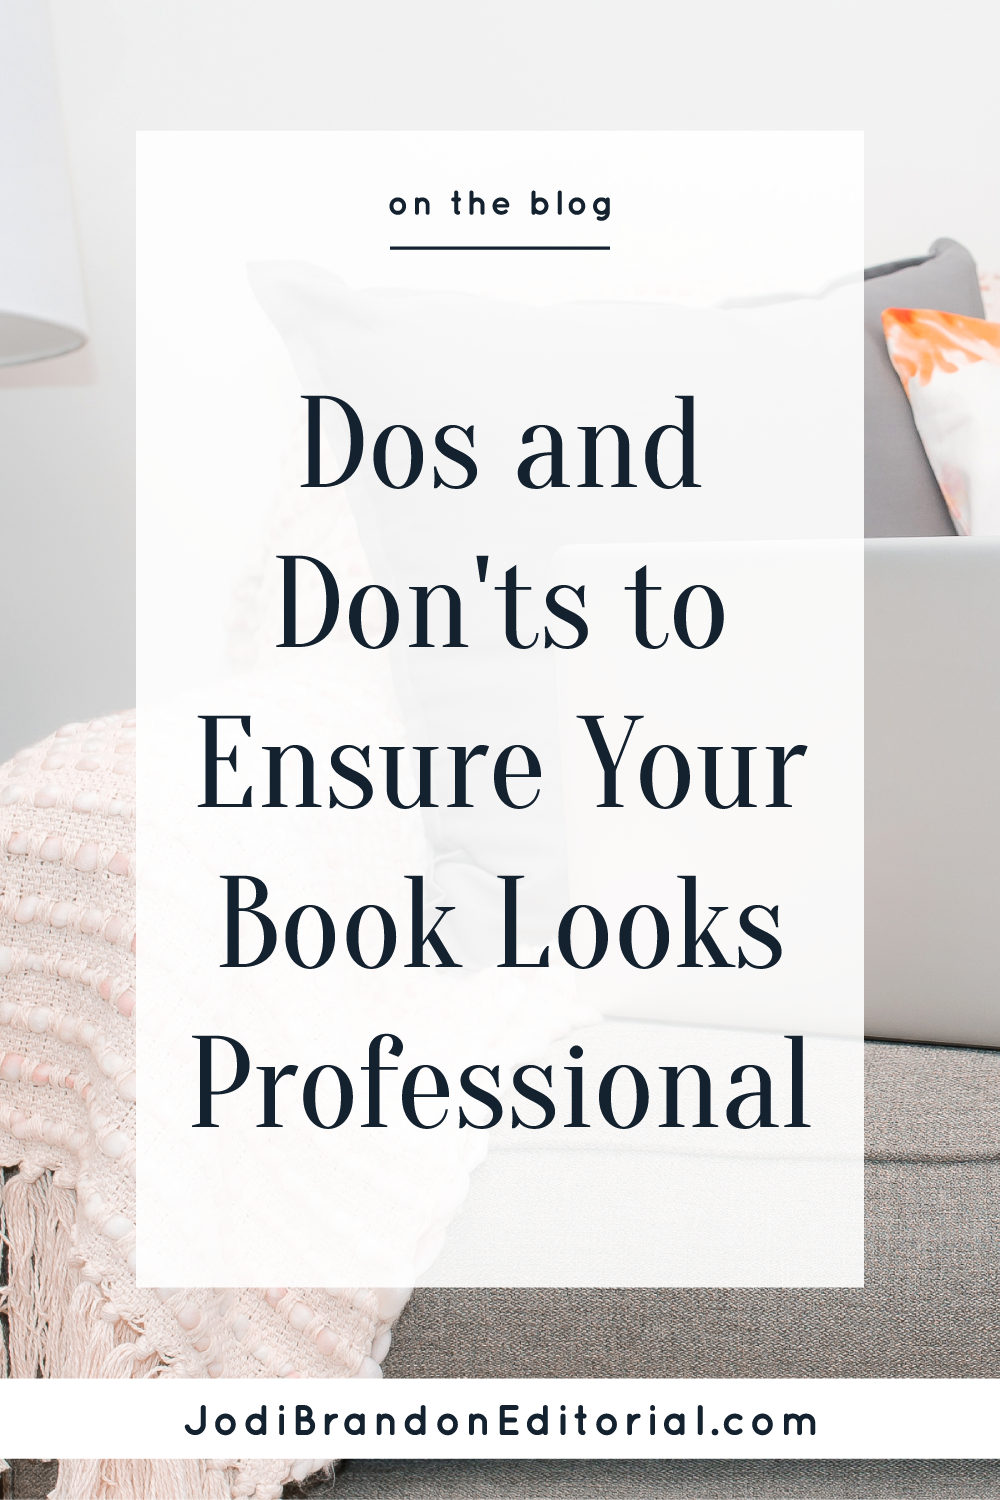 Self-publishing is on the rise. It is important for self-publishing authors (as most of my author-entrepreneur clients are) to produce a book that's as professional as possible. With that many books being published, you want your book to stand out in a good way.   |  Jodi Brandon Editorial